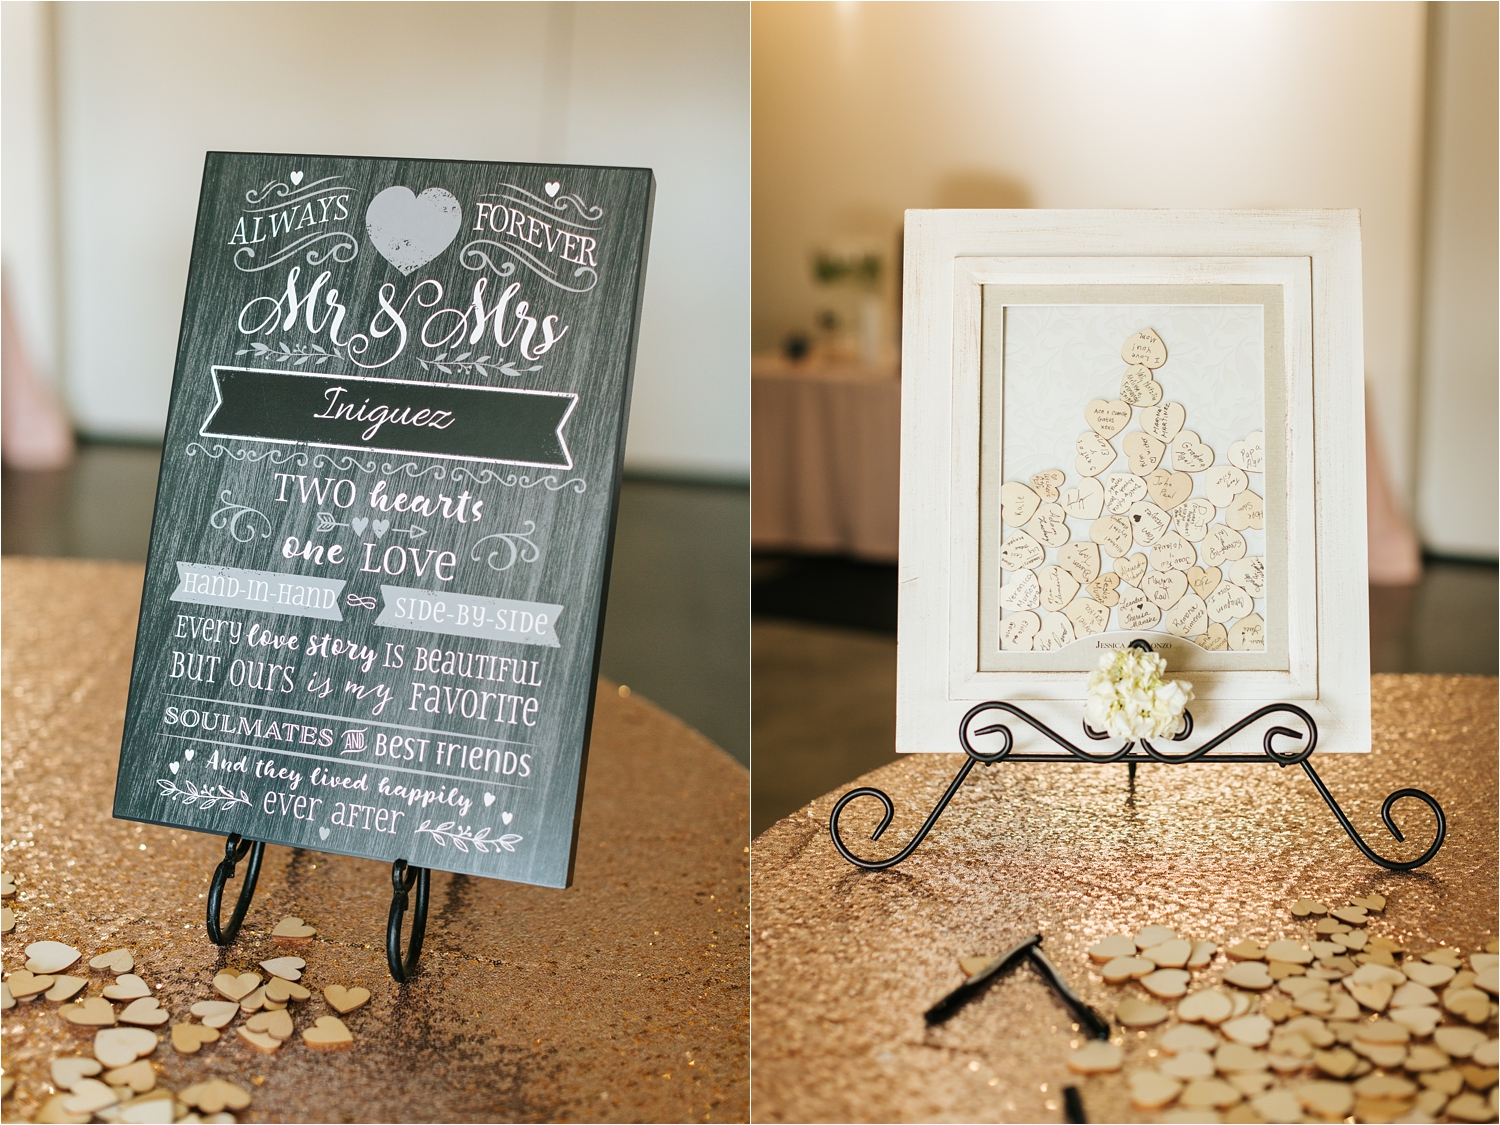 Wedding Reception Details - https://brittneyhannonphotography.com